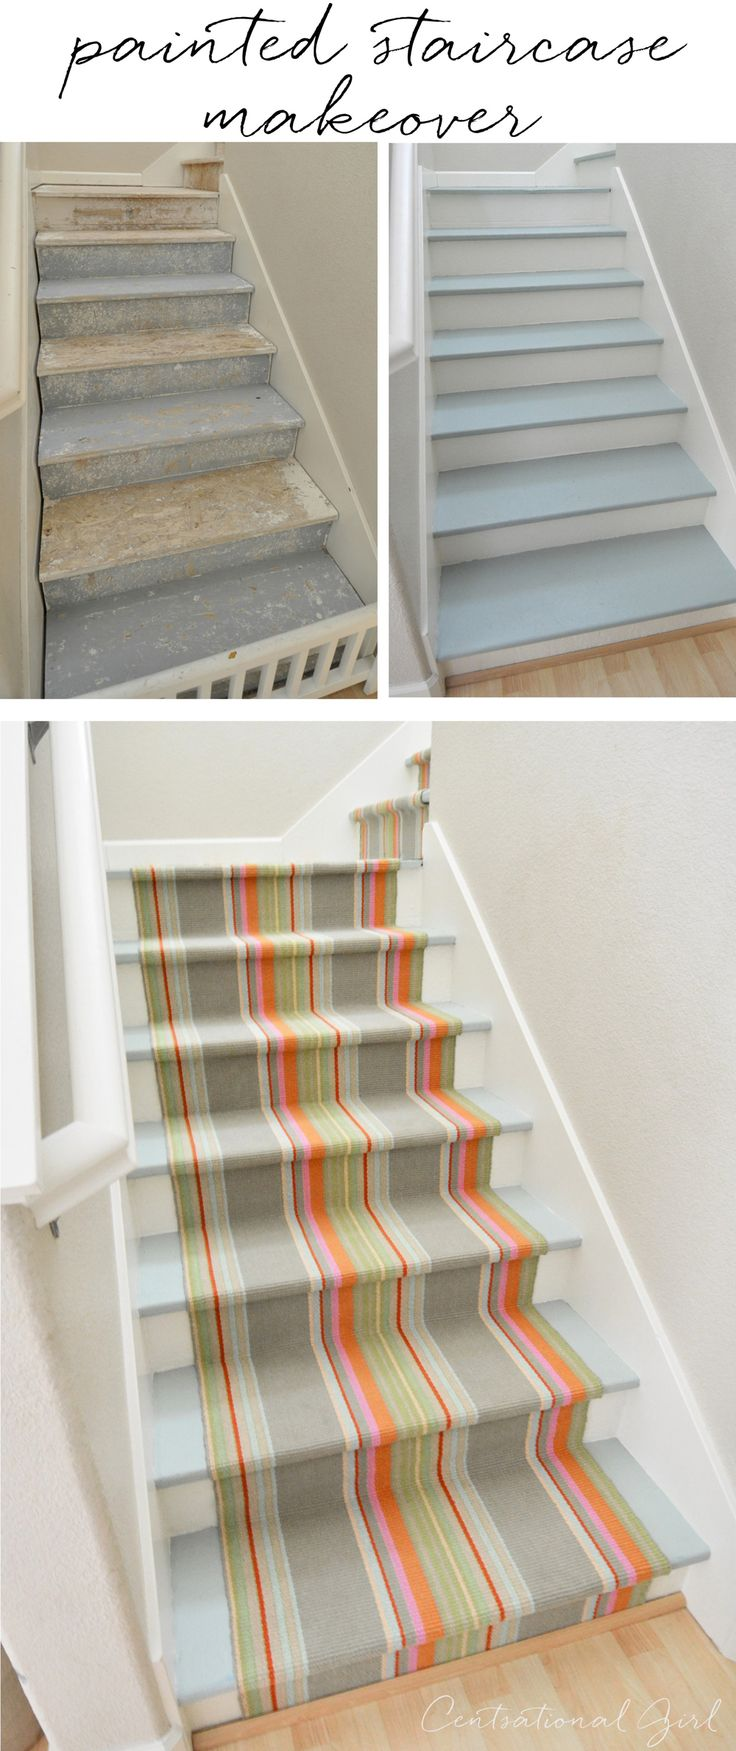 I love this painted staircase, it's so uplifting! This would work well on the stairs from my garage to my studio.